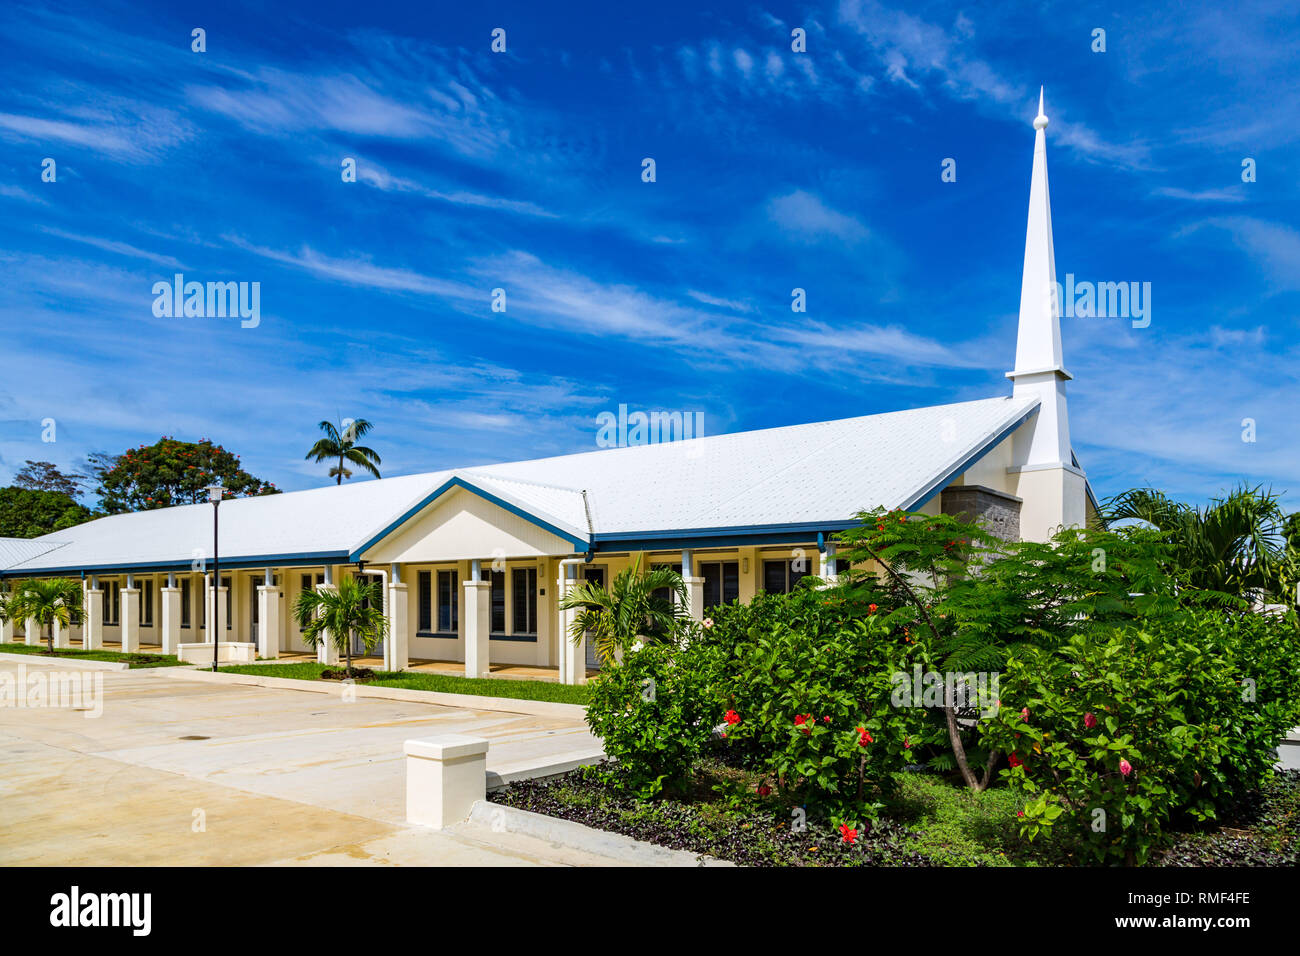 Typical Mormon church (The Church of Jesus Christ of Latter-day Saints) in rural Oceania. Tongatapu Island​, Tonga, Polynesia, South Pacific Ocean. - Stock Image